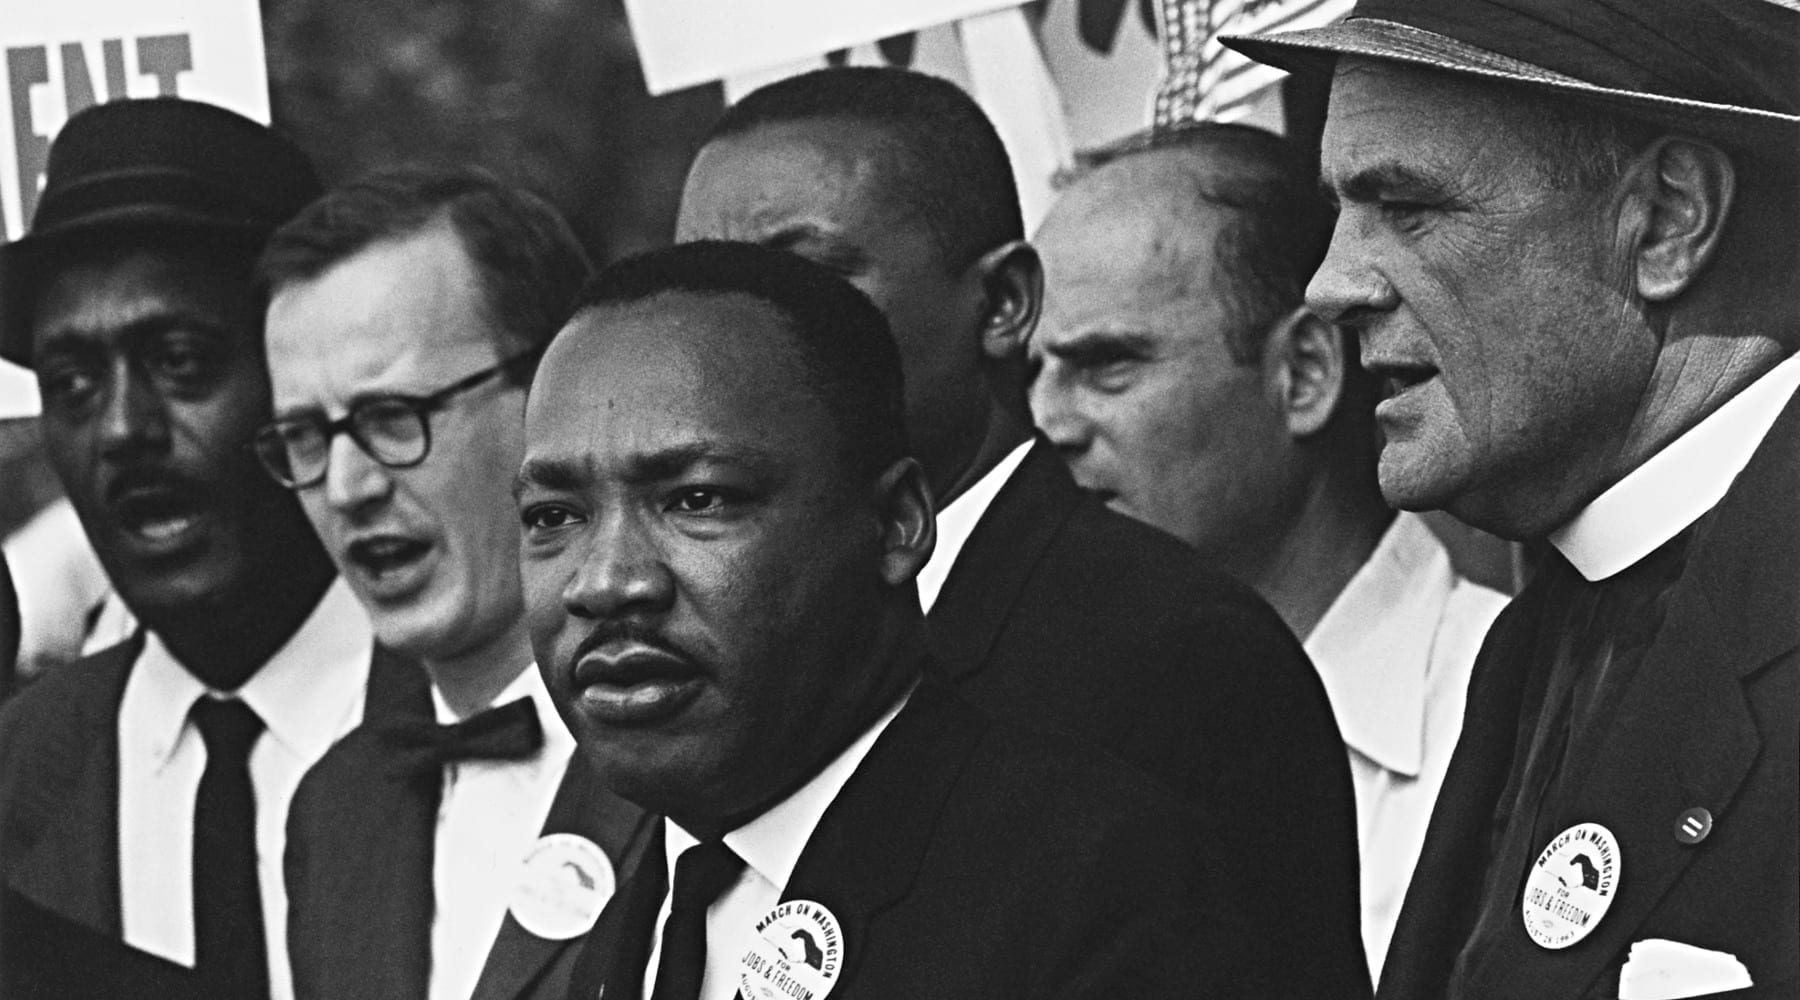 Martin Luther King Jr. at rally